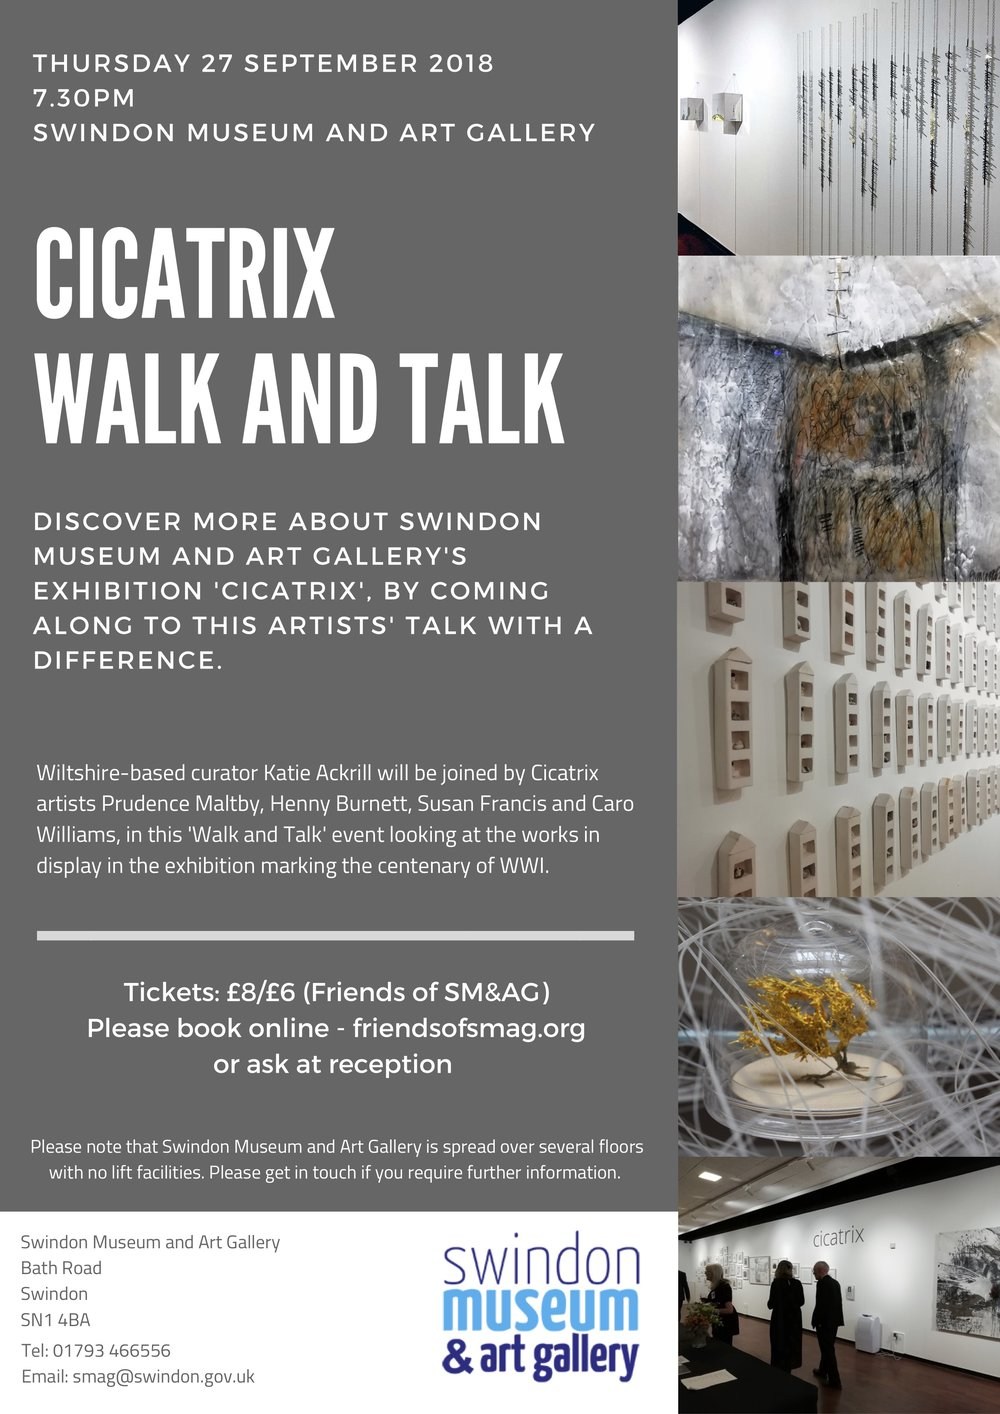 Cicatrix Walk and Talk  at the Swindon Museum and Art Gallery   Thursday 27 September  2018 at 7.30pm   http://swindonmuseumandartgallery.org.uk/event/cicatrix-walk-and-talk/    http://friendsofsmag.org/events/cicatrix-call-response-walk-and-talk/